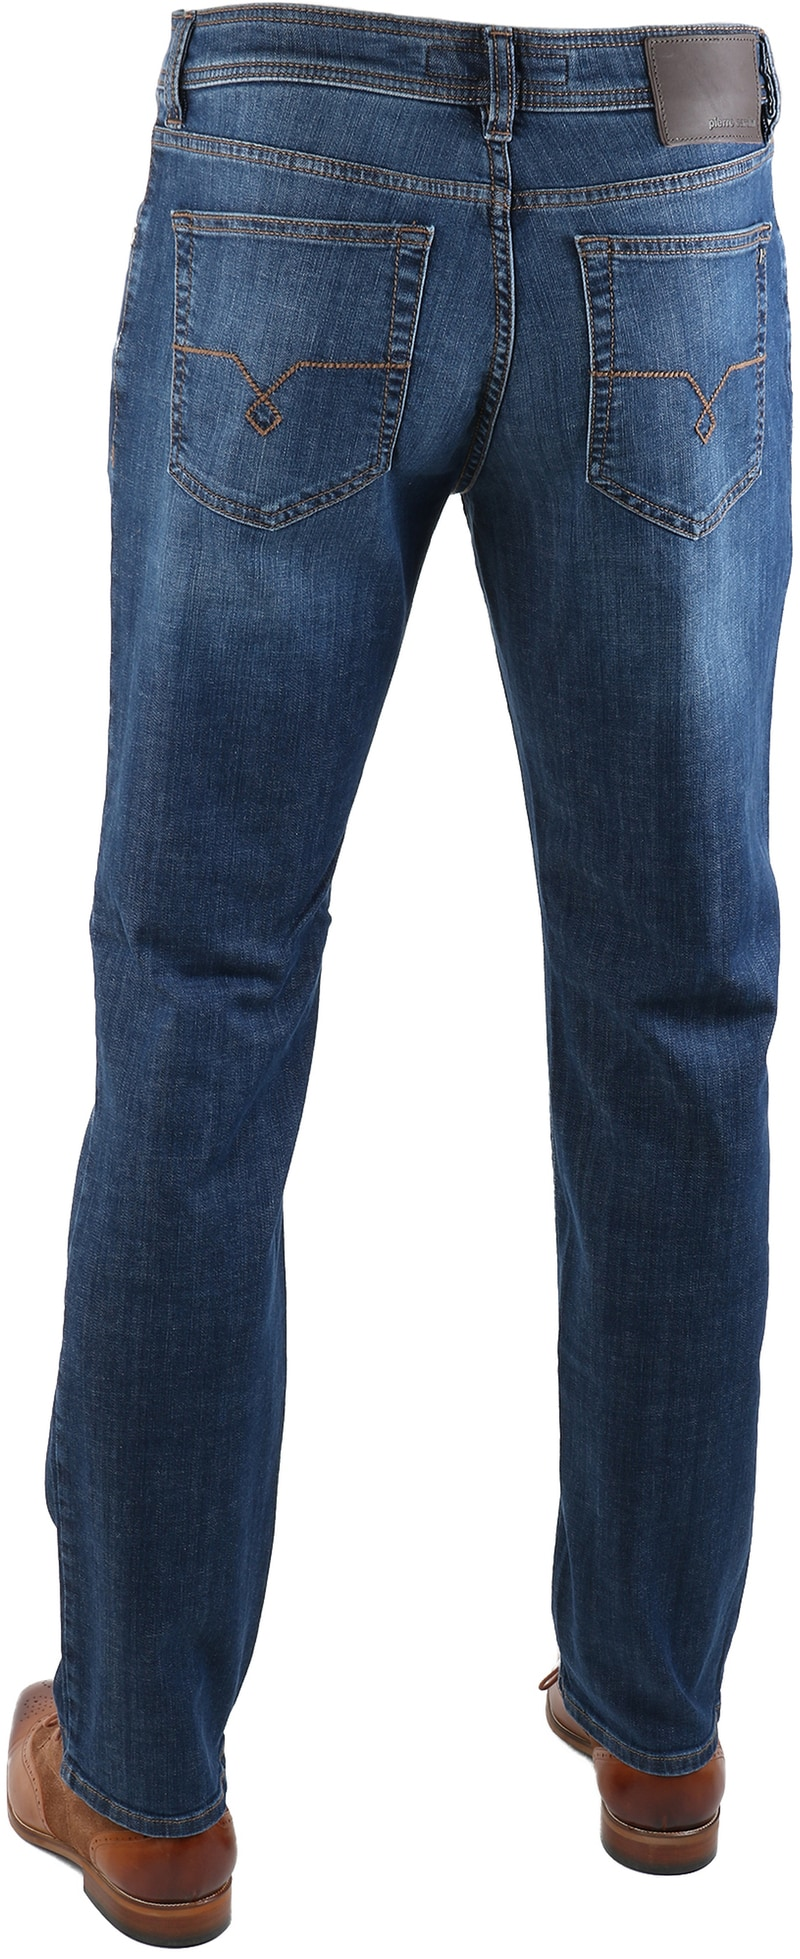 Pierre Cardin Jeans Deauville Stretch 07 photo 1